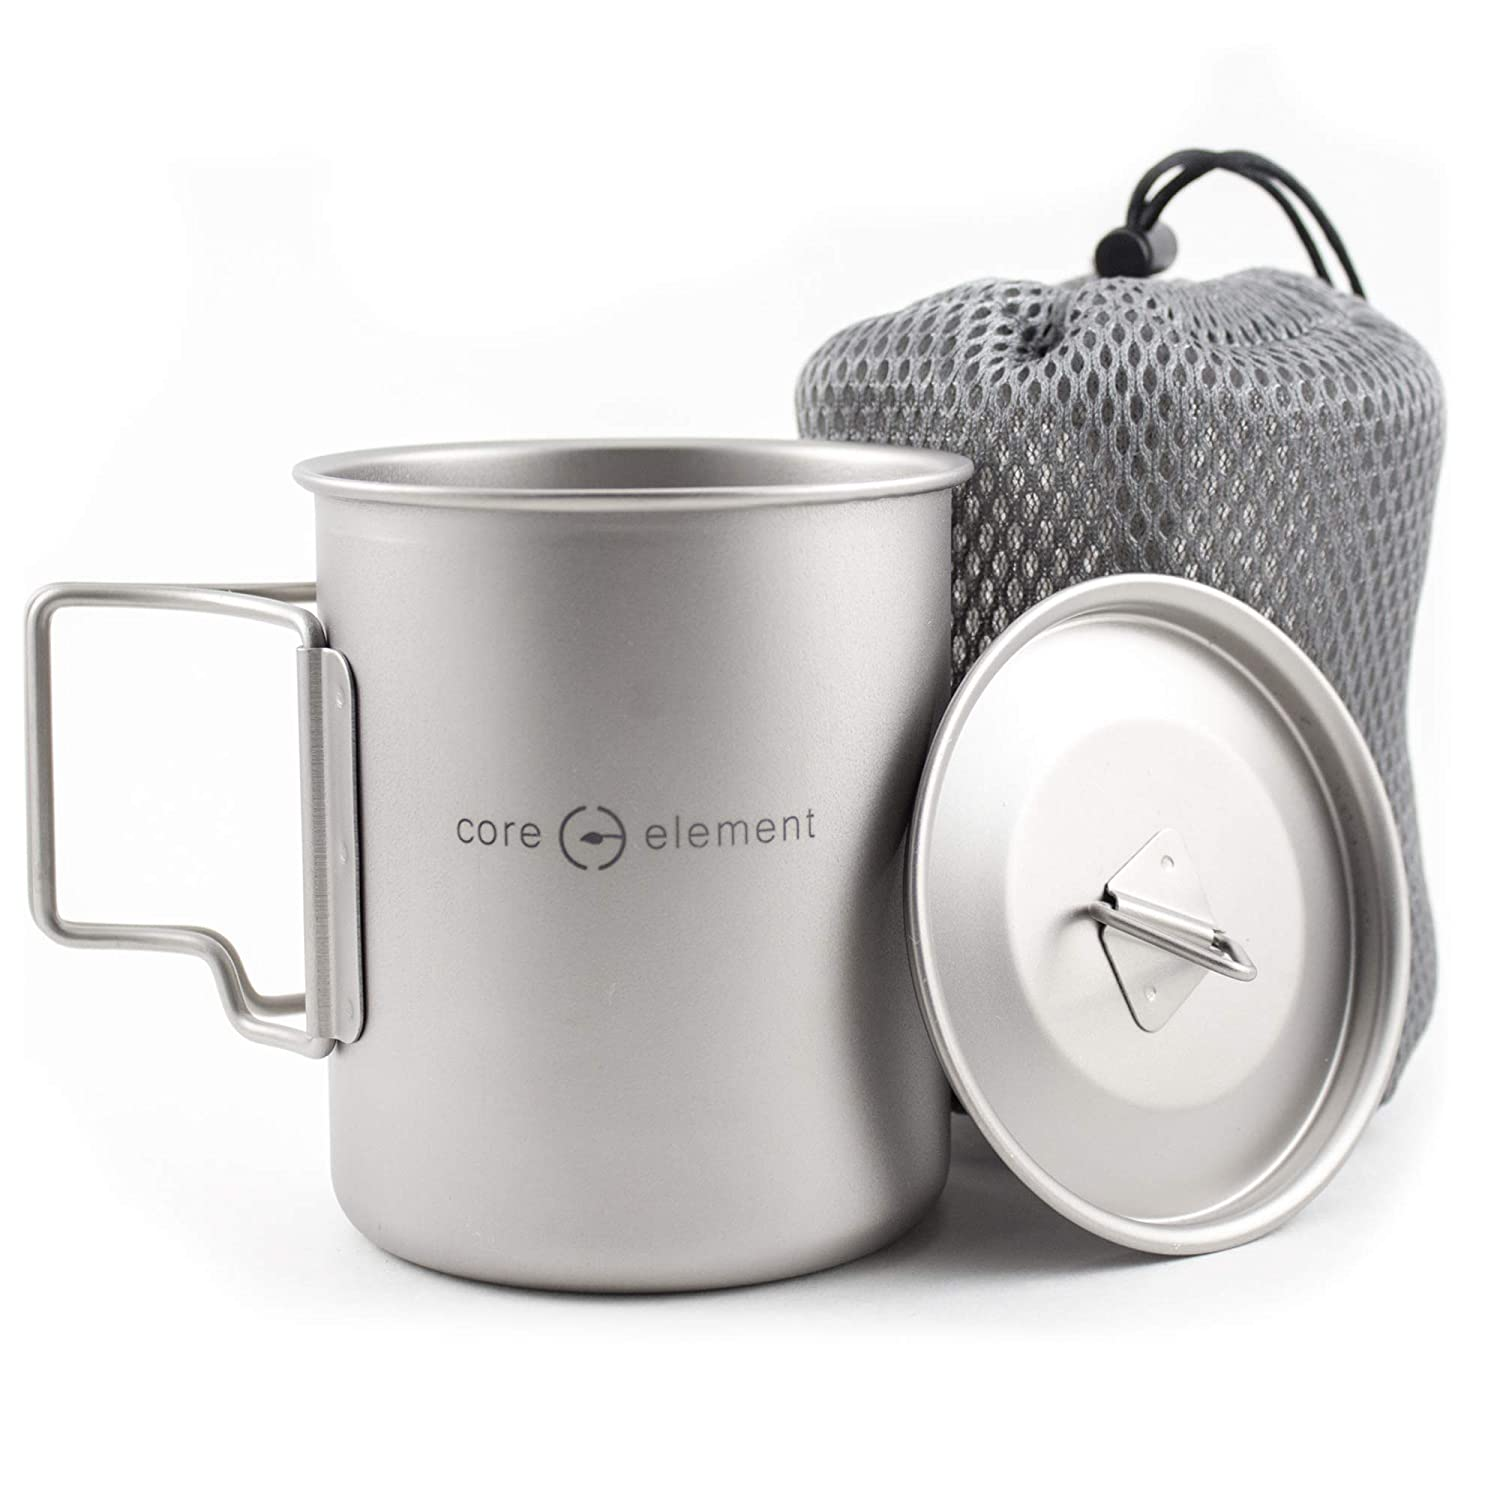 de5ae9f218c9 Amazon.com   Core Element 100% Titanium Outdoor Ultralight Portable Cooking  Pot Mug Open Campfire Cookware for Camping and Backpacking (450ml)   Sports    ...